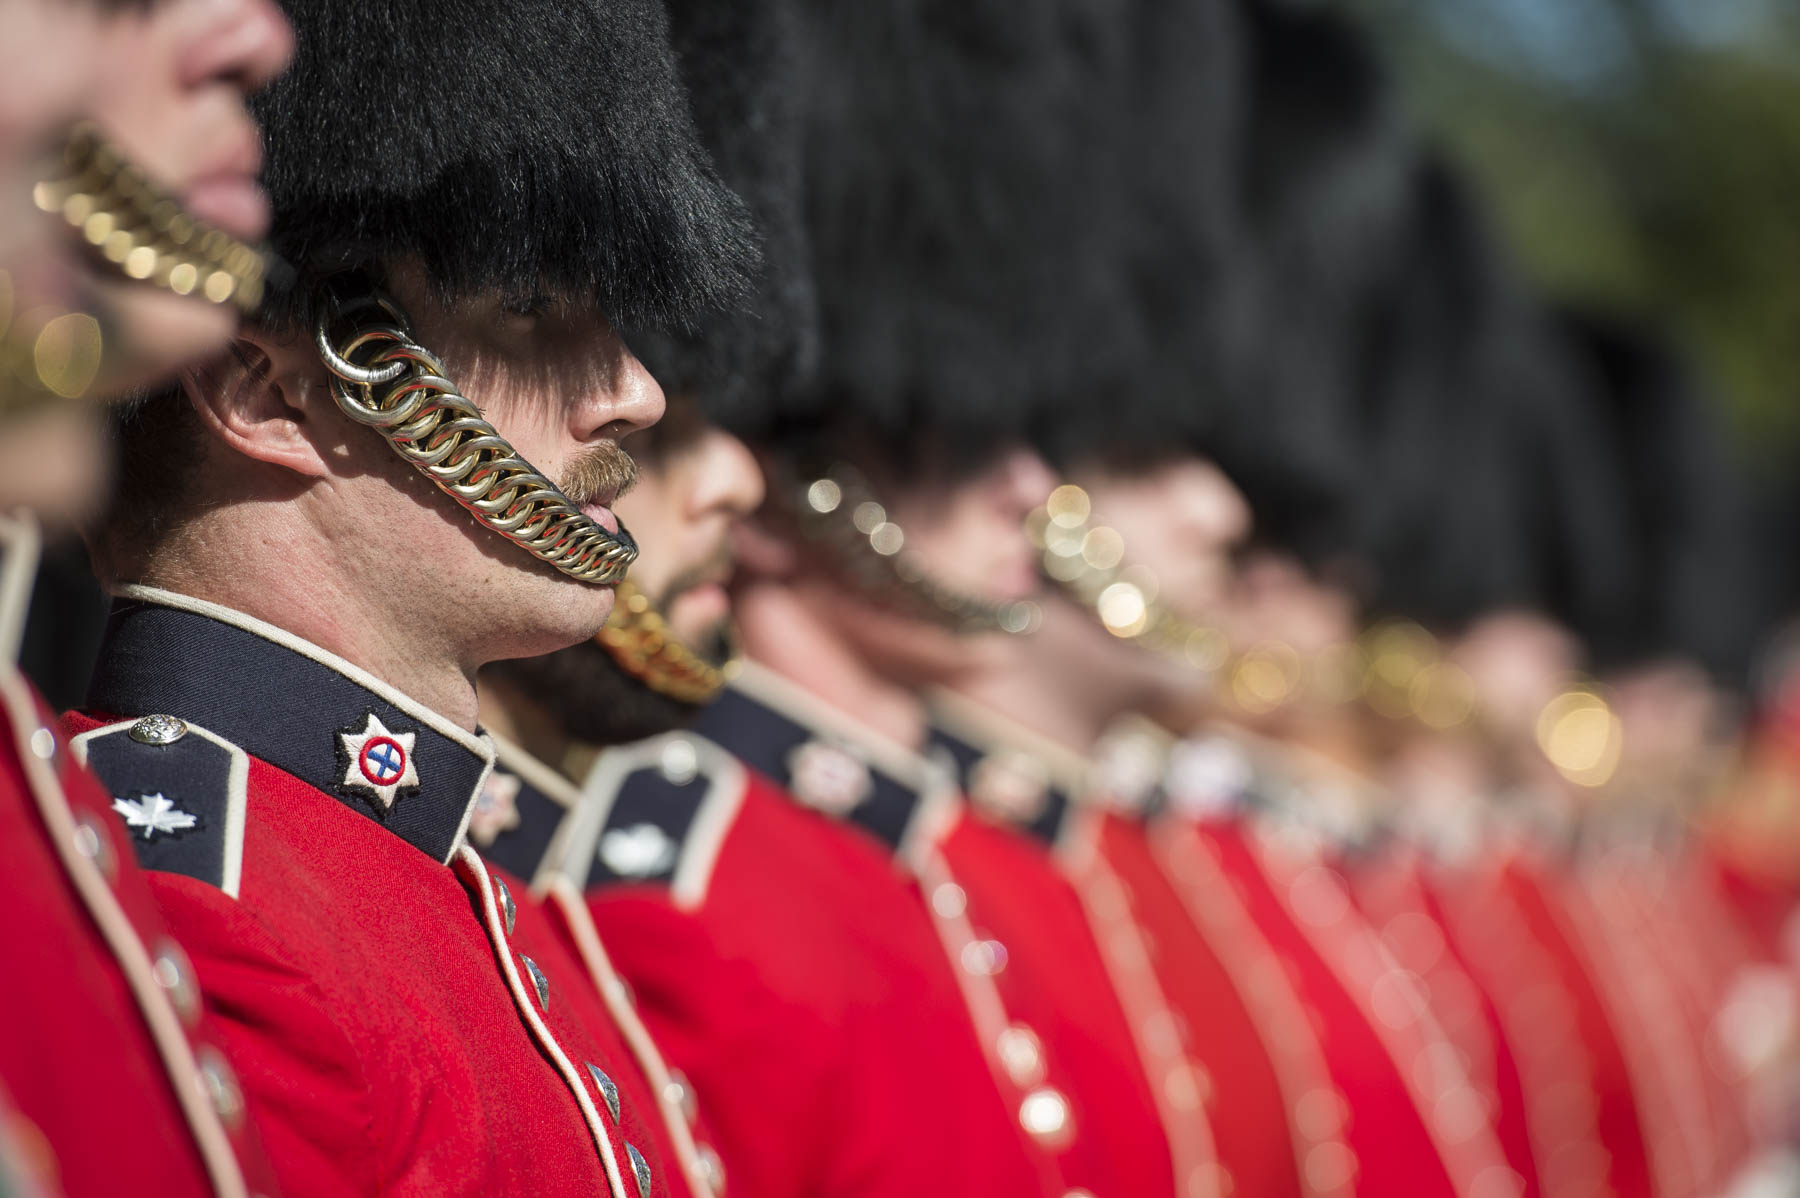 The 100-person guard of honour was composed of men and women from the Canadian Grenadier Guards and the Governor General's Foot Guards, two of the household regiments.